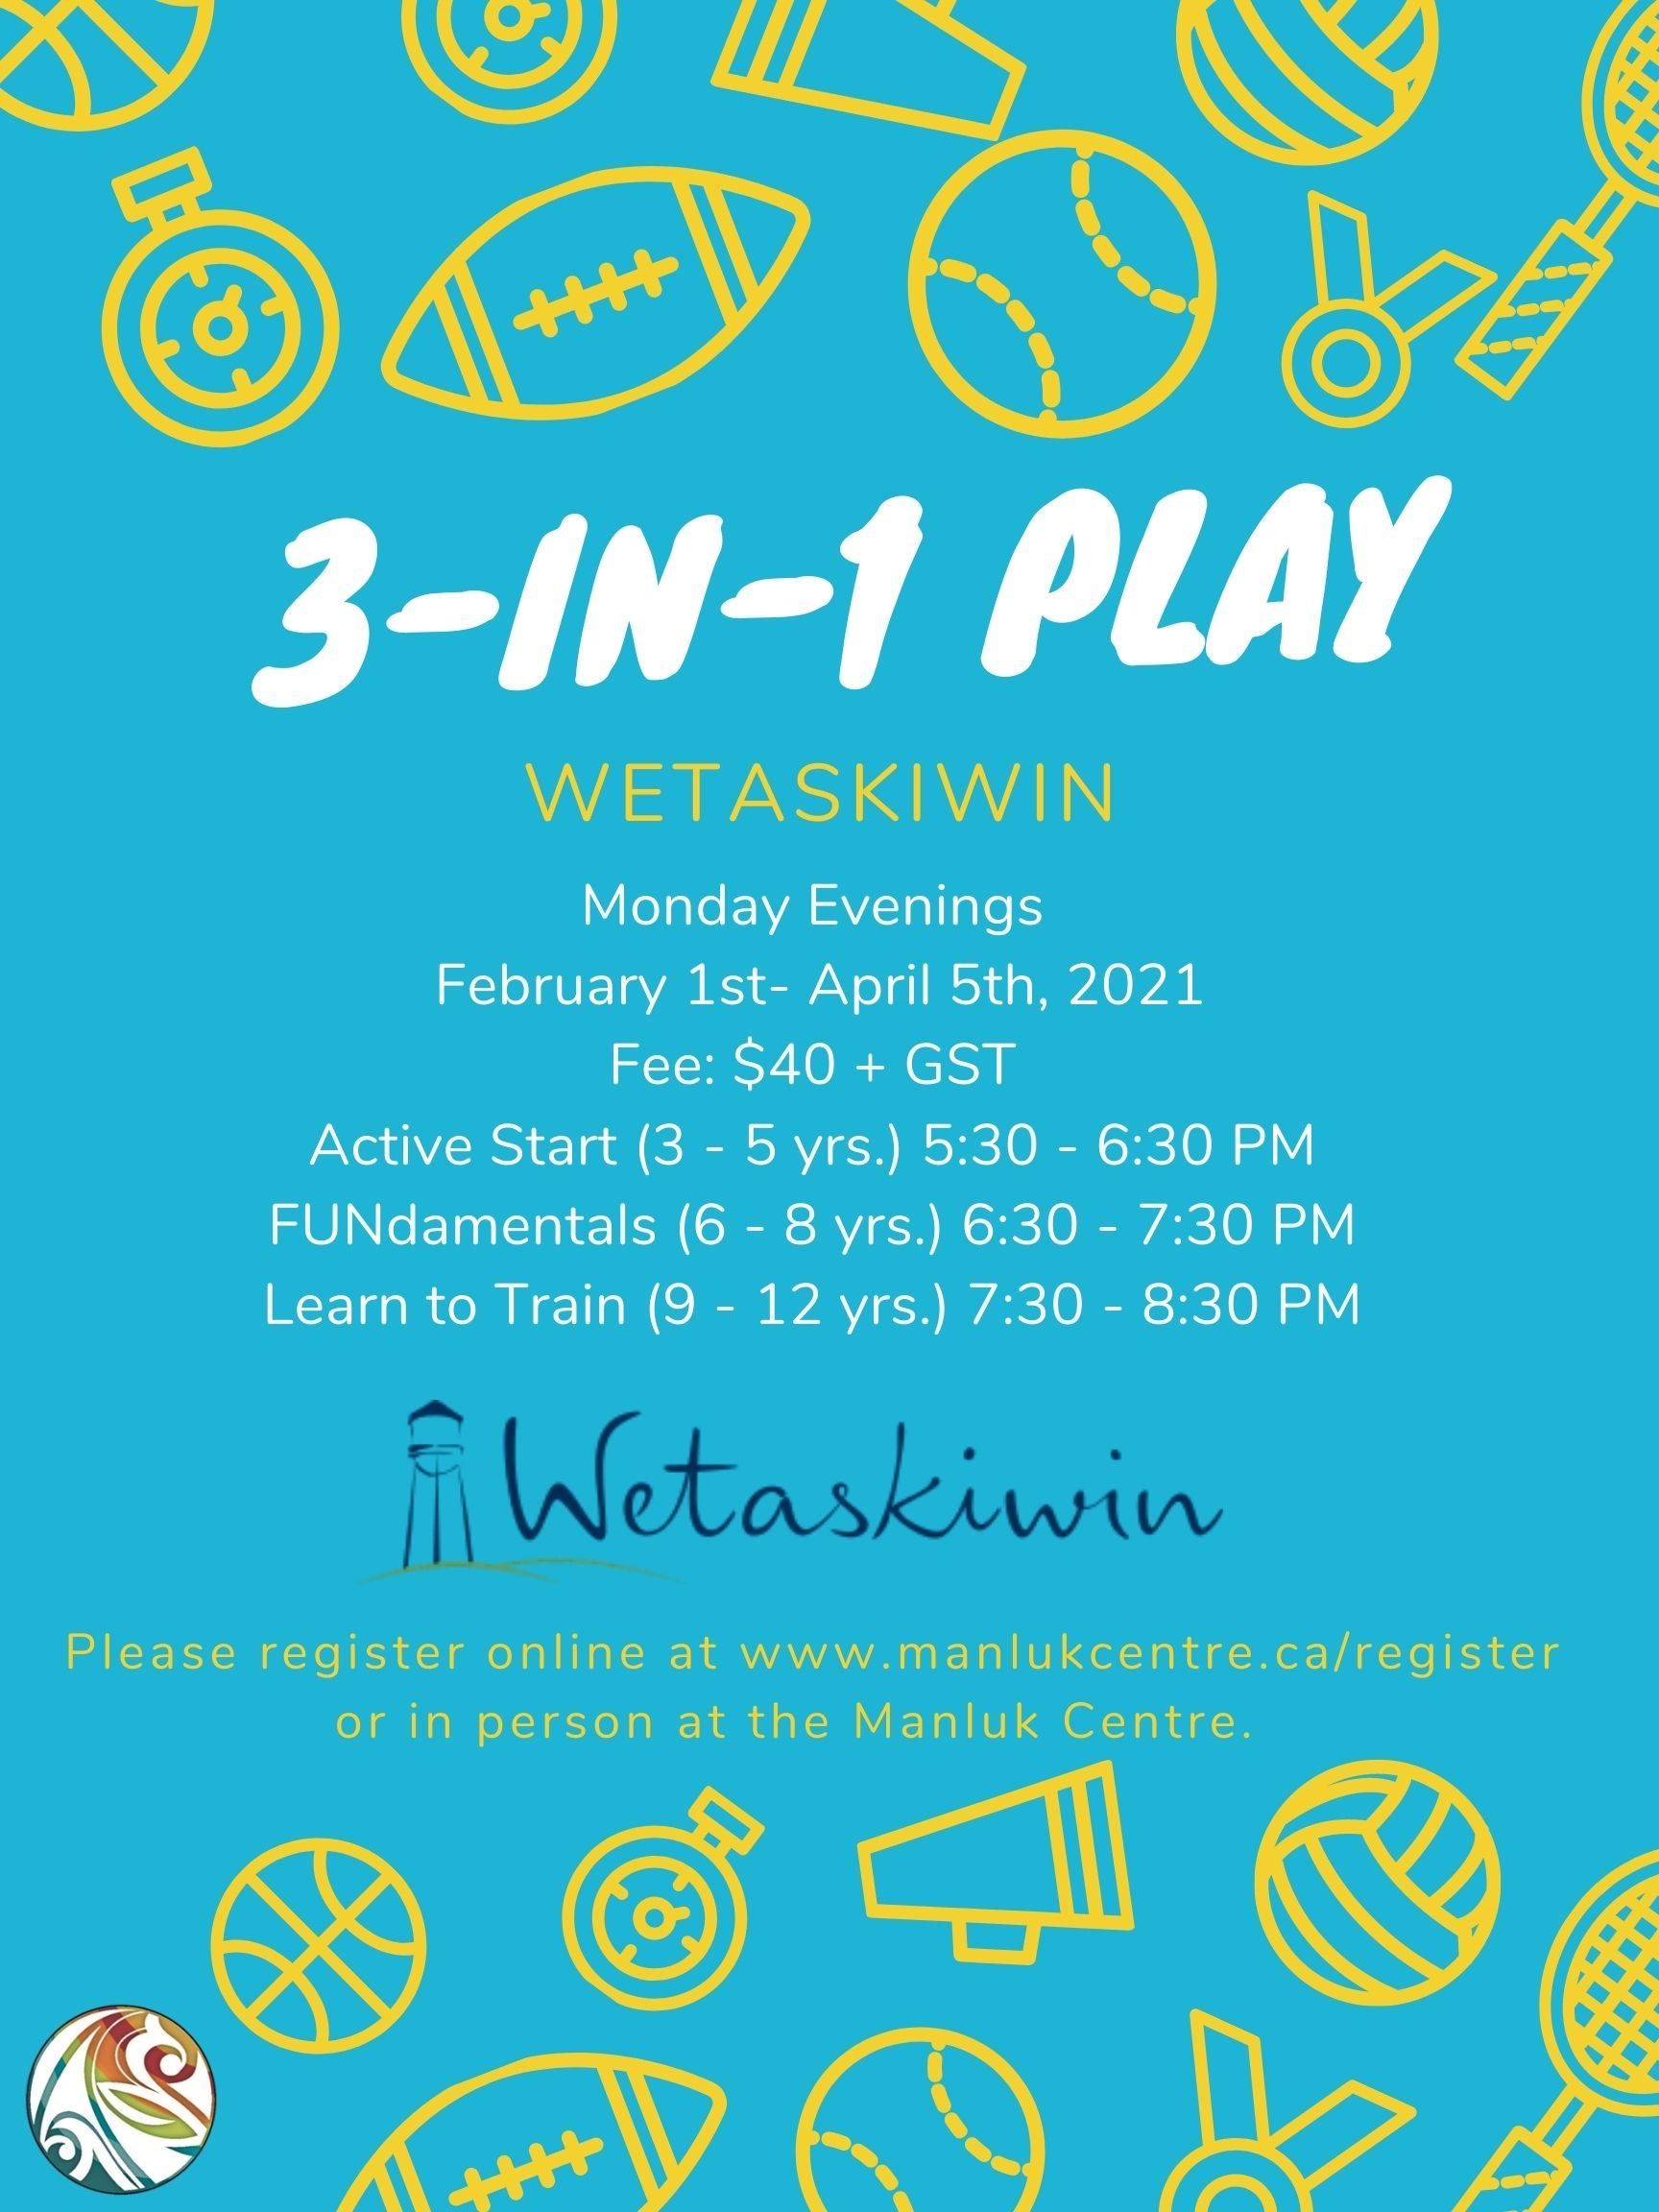 PLAY Wetaskiwin - Winter 2021